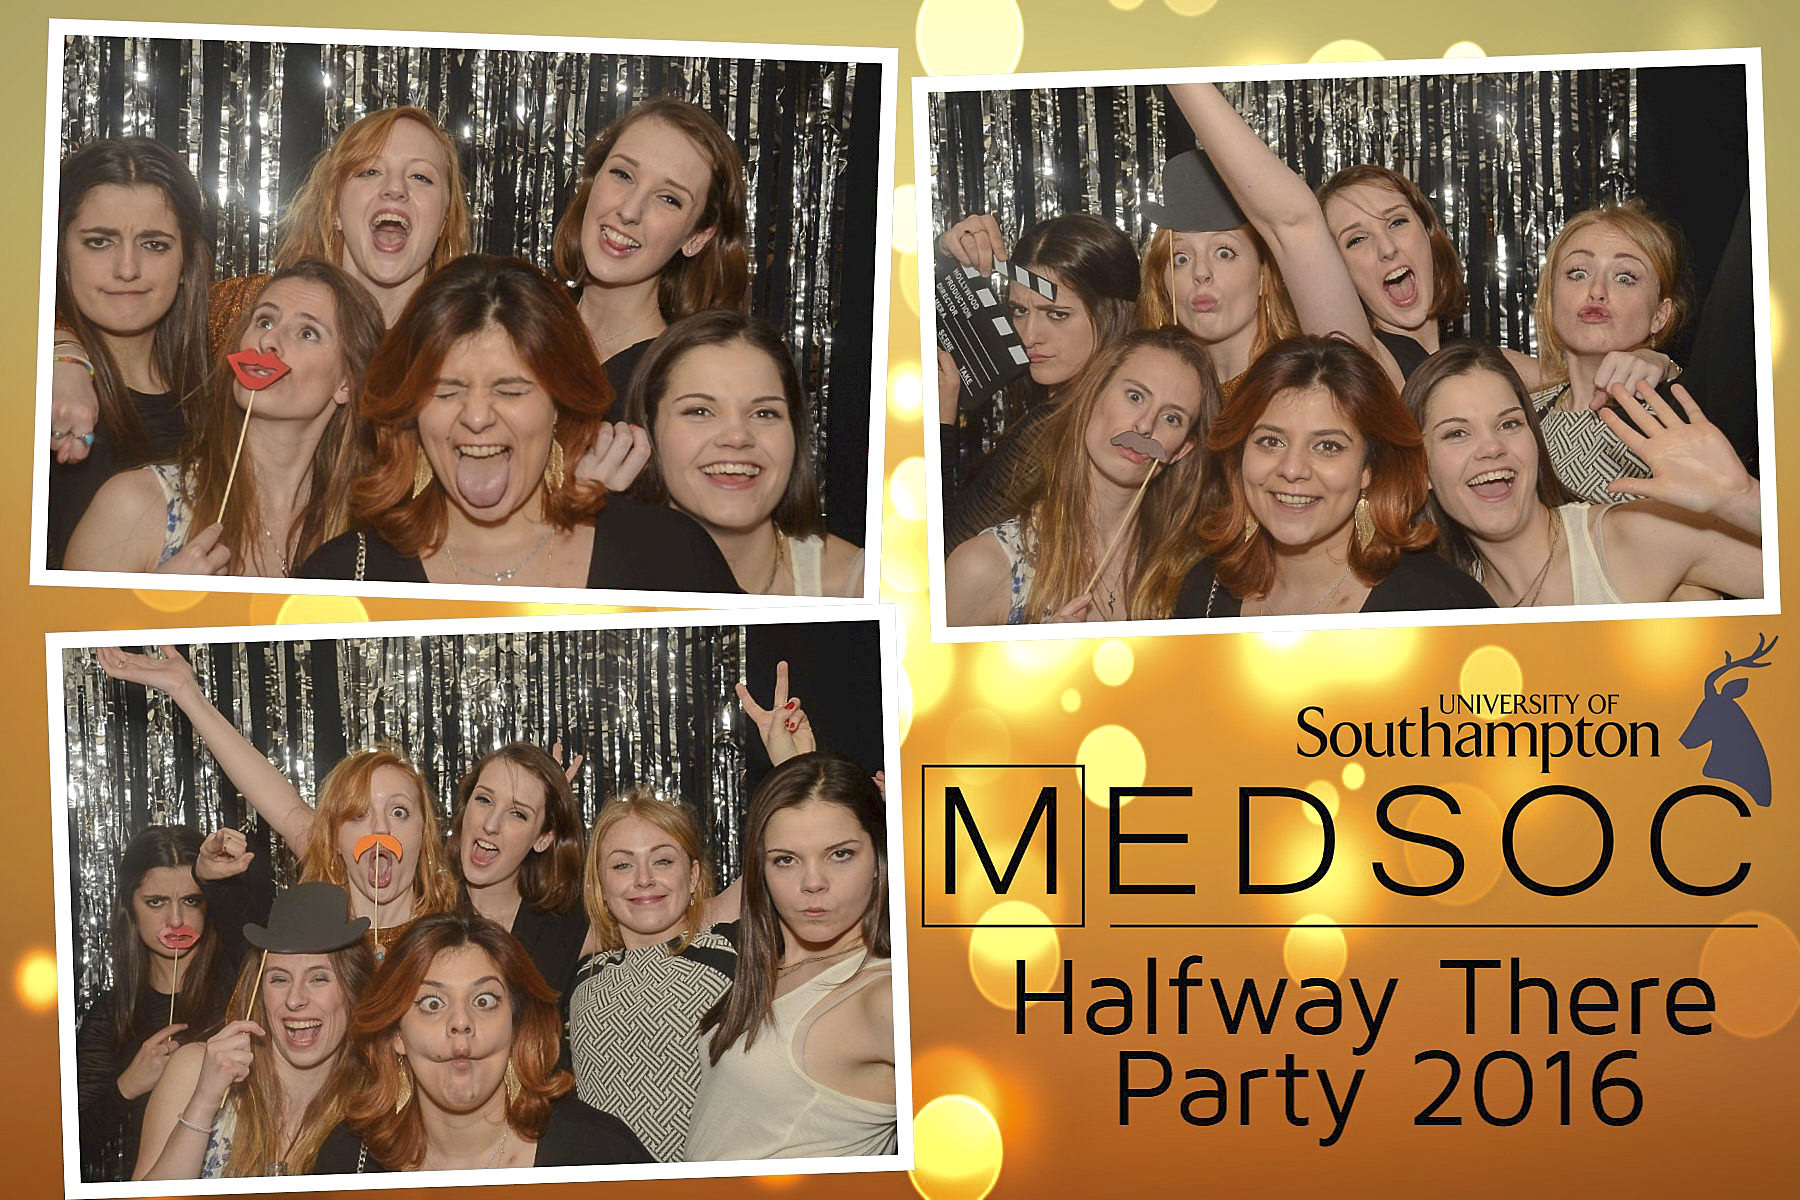 MedSoc Halfway There Party 2016 DS004631.jpg